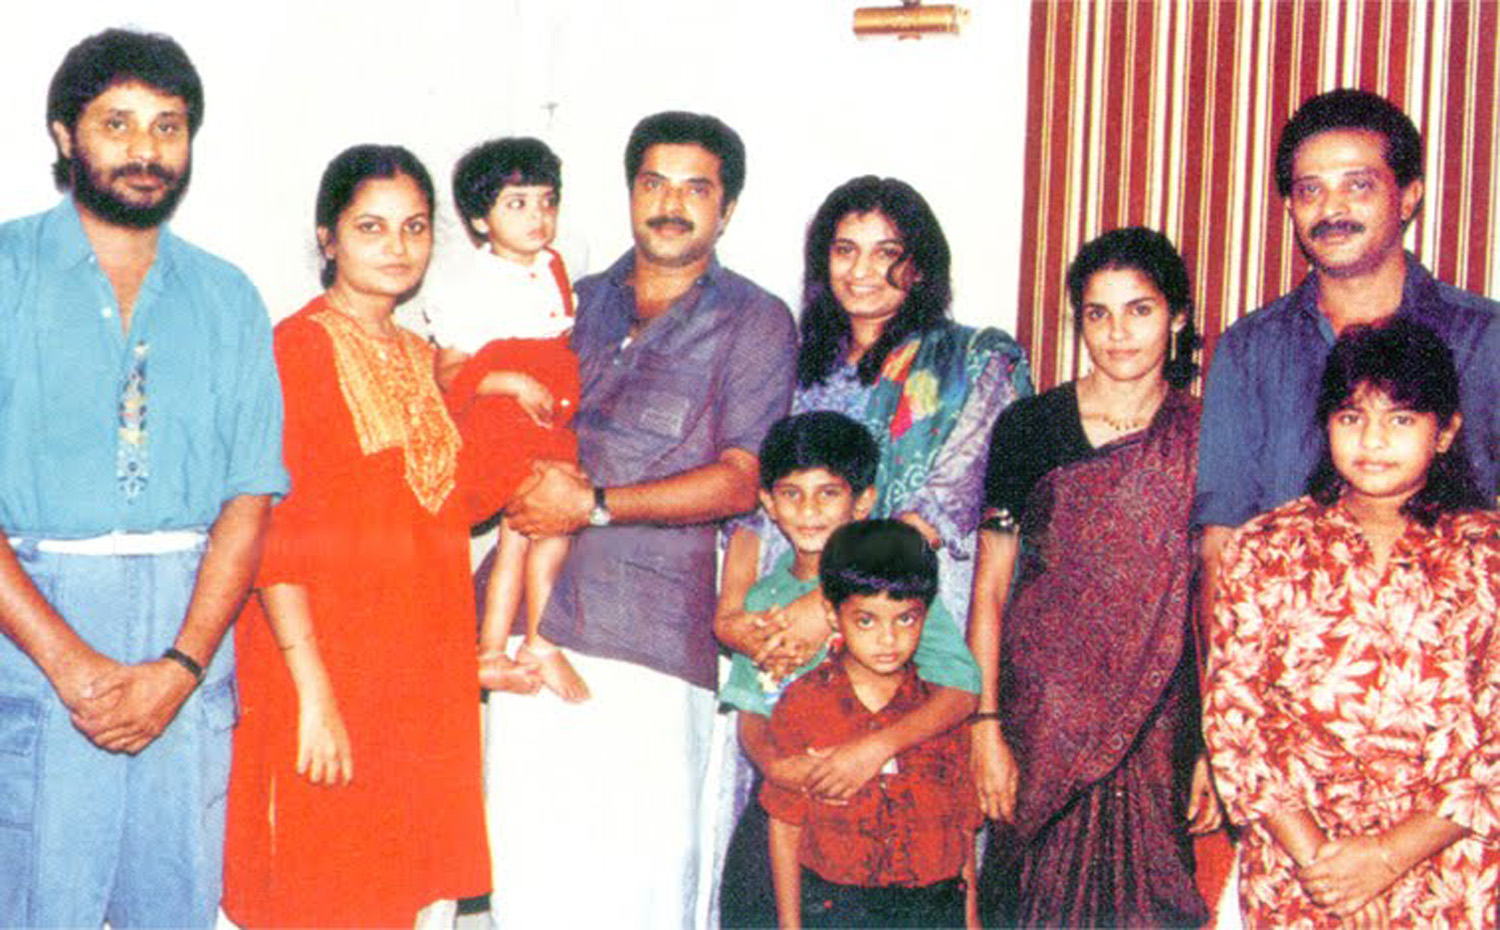 http://onlookersmedia.in/wp-content/uploads/2016/05/Mammootty-family-photos-Wife-Daughter-Son-3.jpg